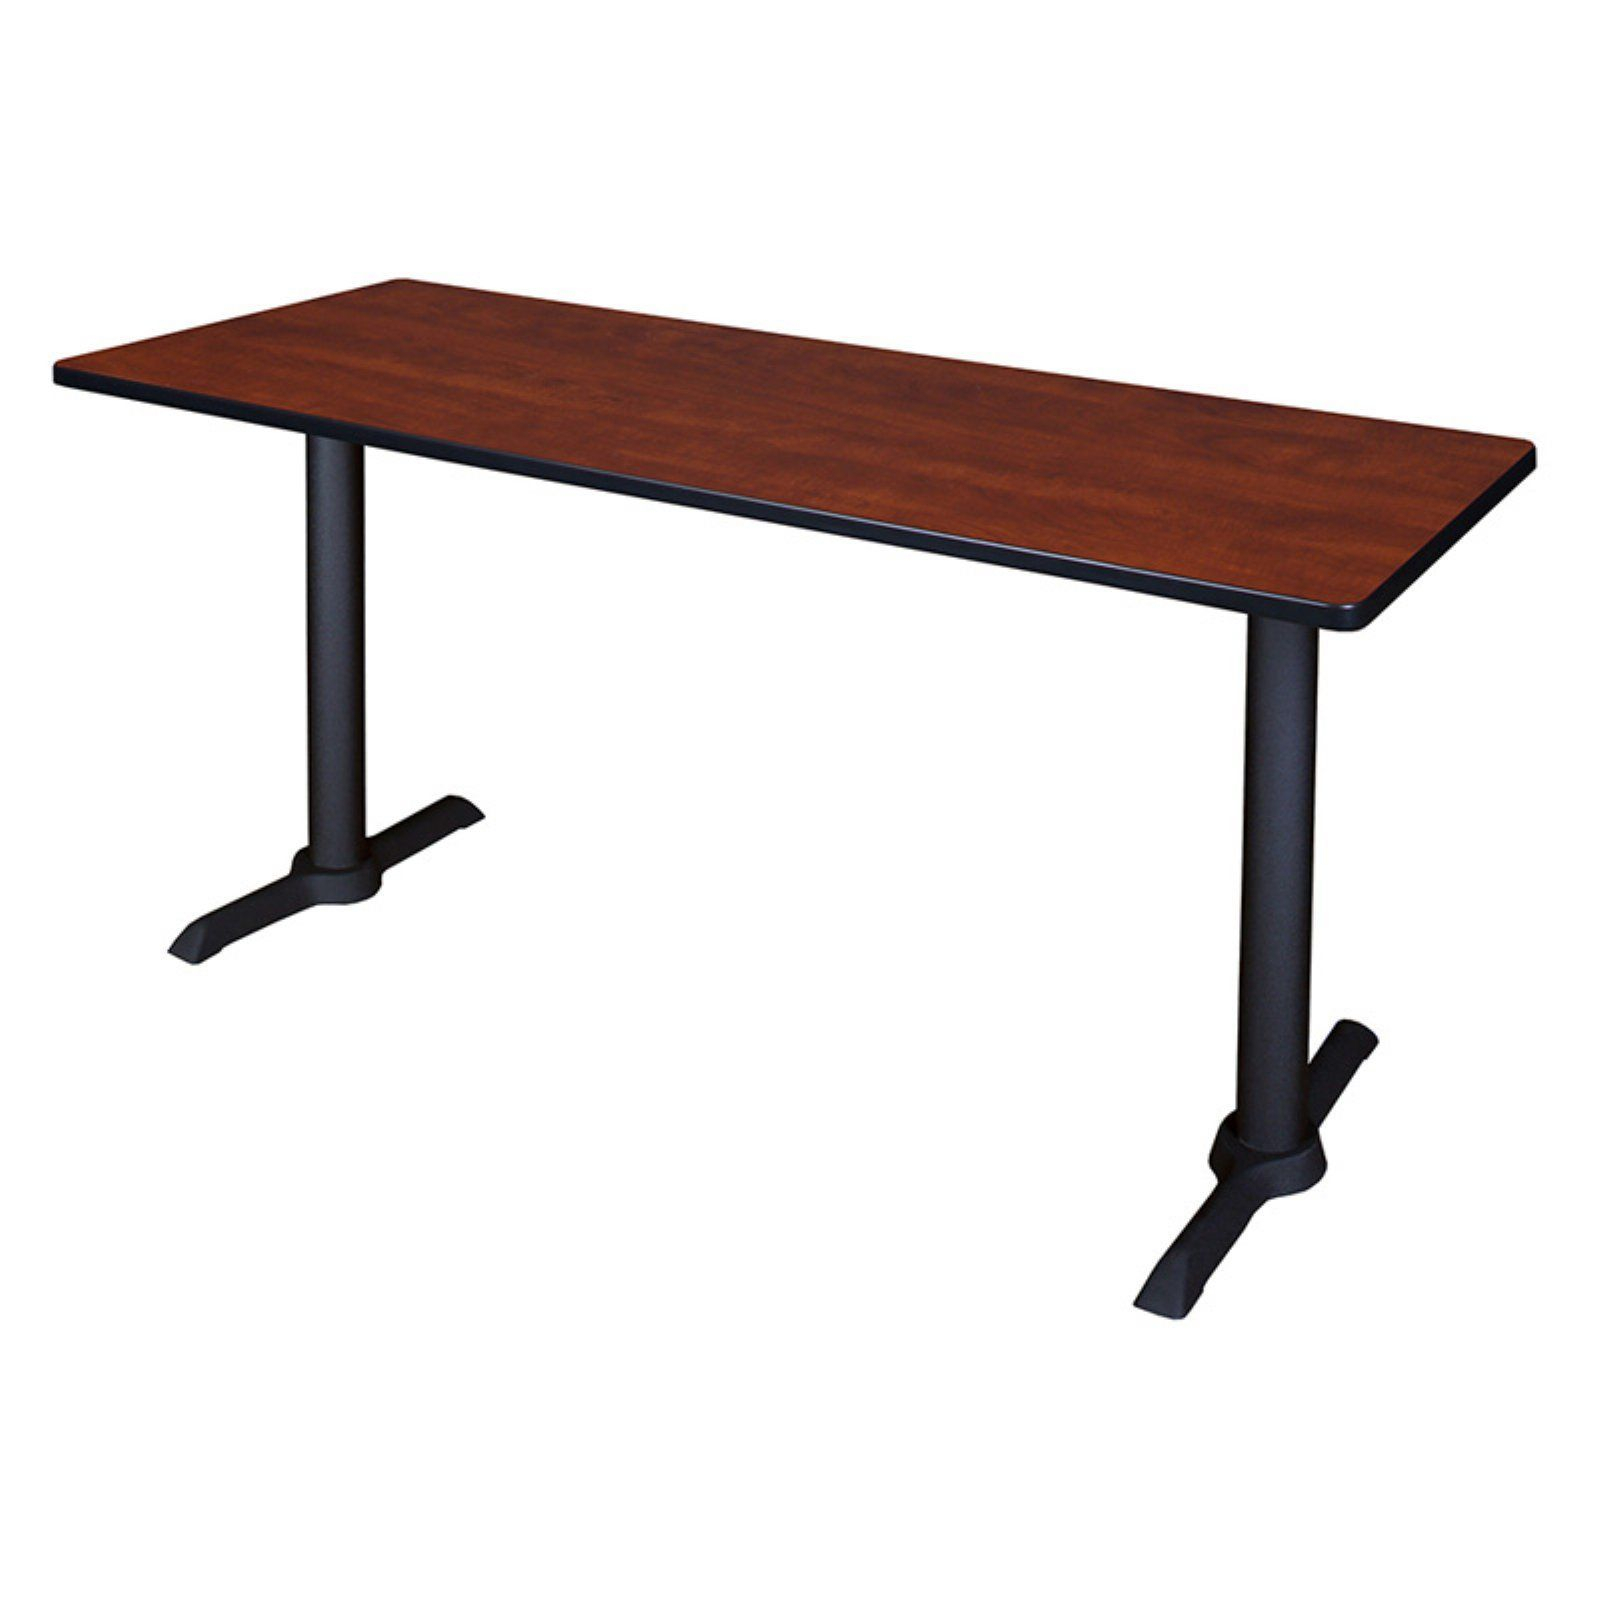 Regency Cain Training Table | Training Tables, Quality Regarding Latest Midtown Solid Wood Breakroom Tables (View 8 of 15)